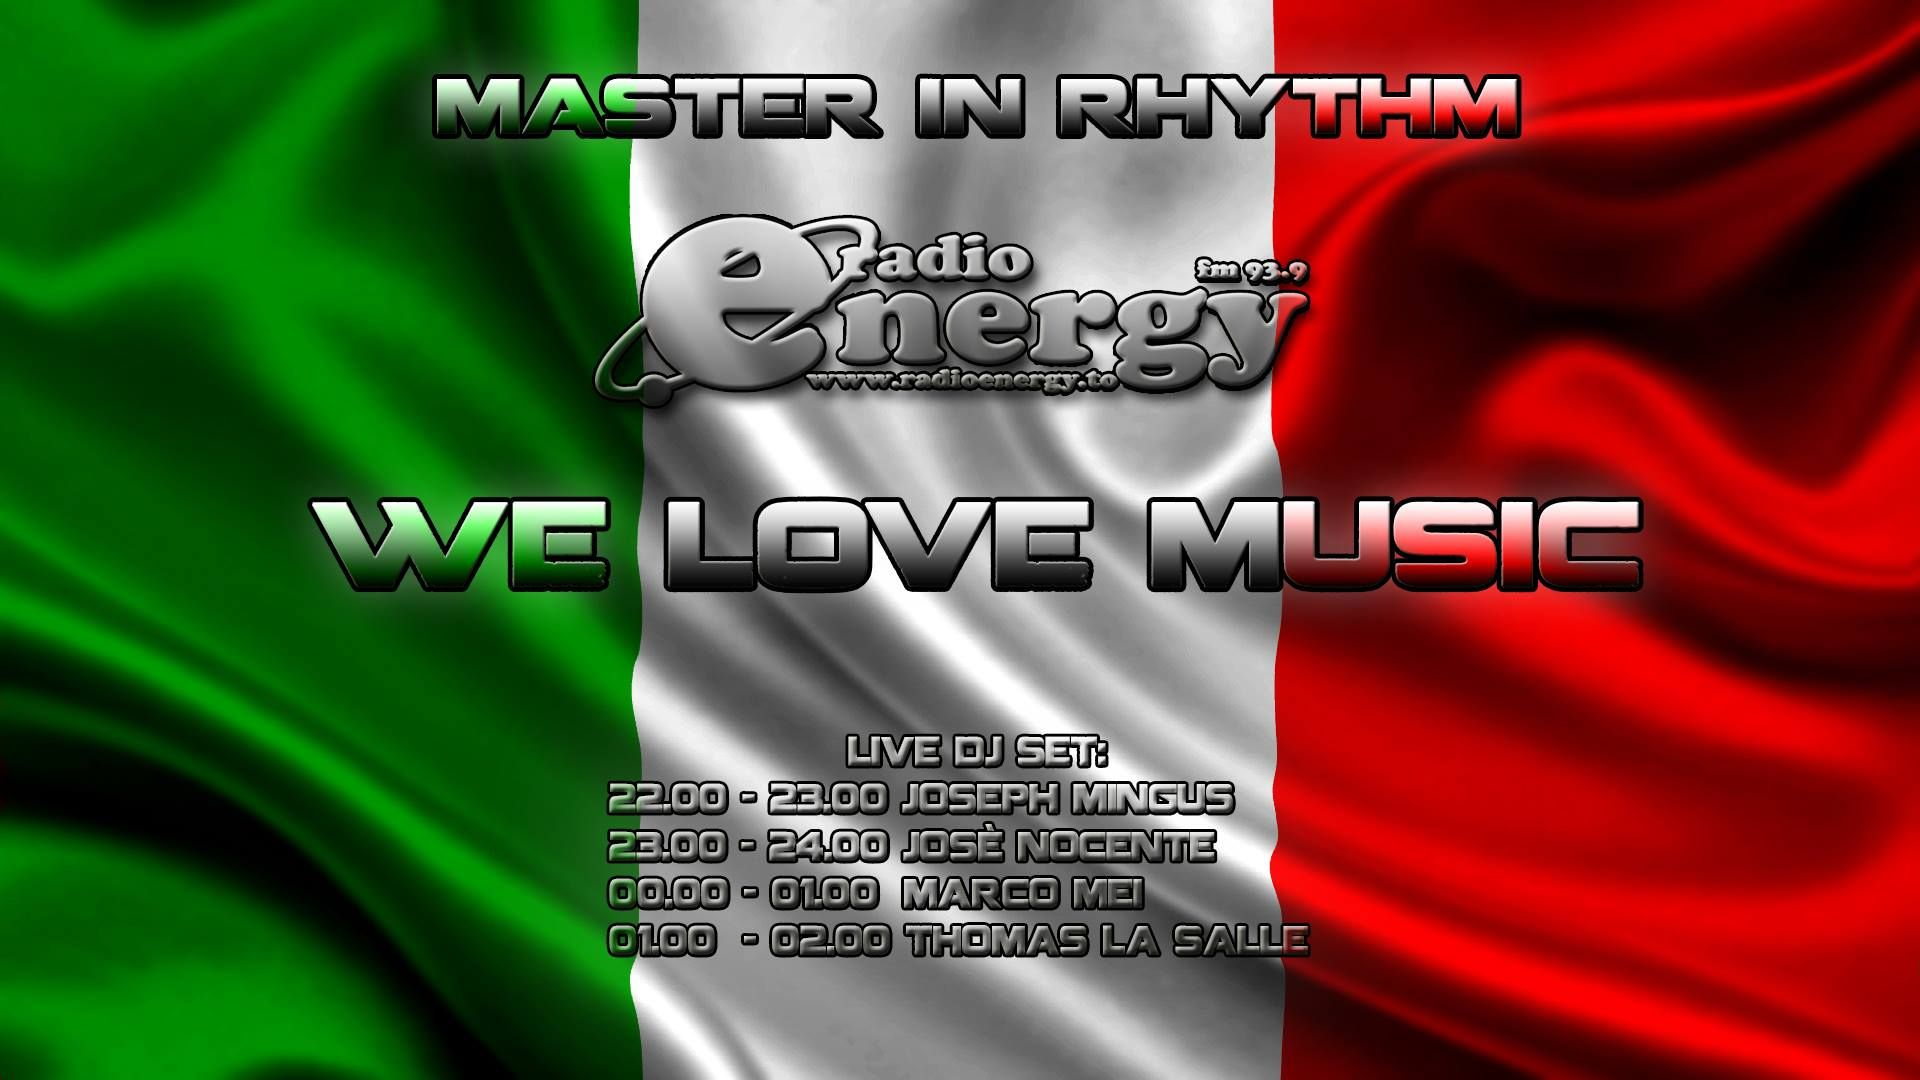 Tonight On - Air from 22 .... Master In Rhythm on Radio Energy...  22-23 Joseph Mingus 23-24 Jose' Nocente 00-01 Marco MEI 01-02 Thomas La Salle From 303Lovers  Stay tuned !!! www.radioenergy.to - F.M. 93.9